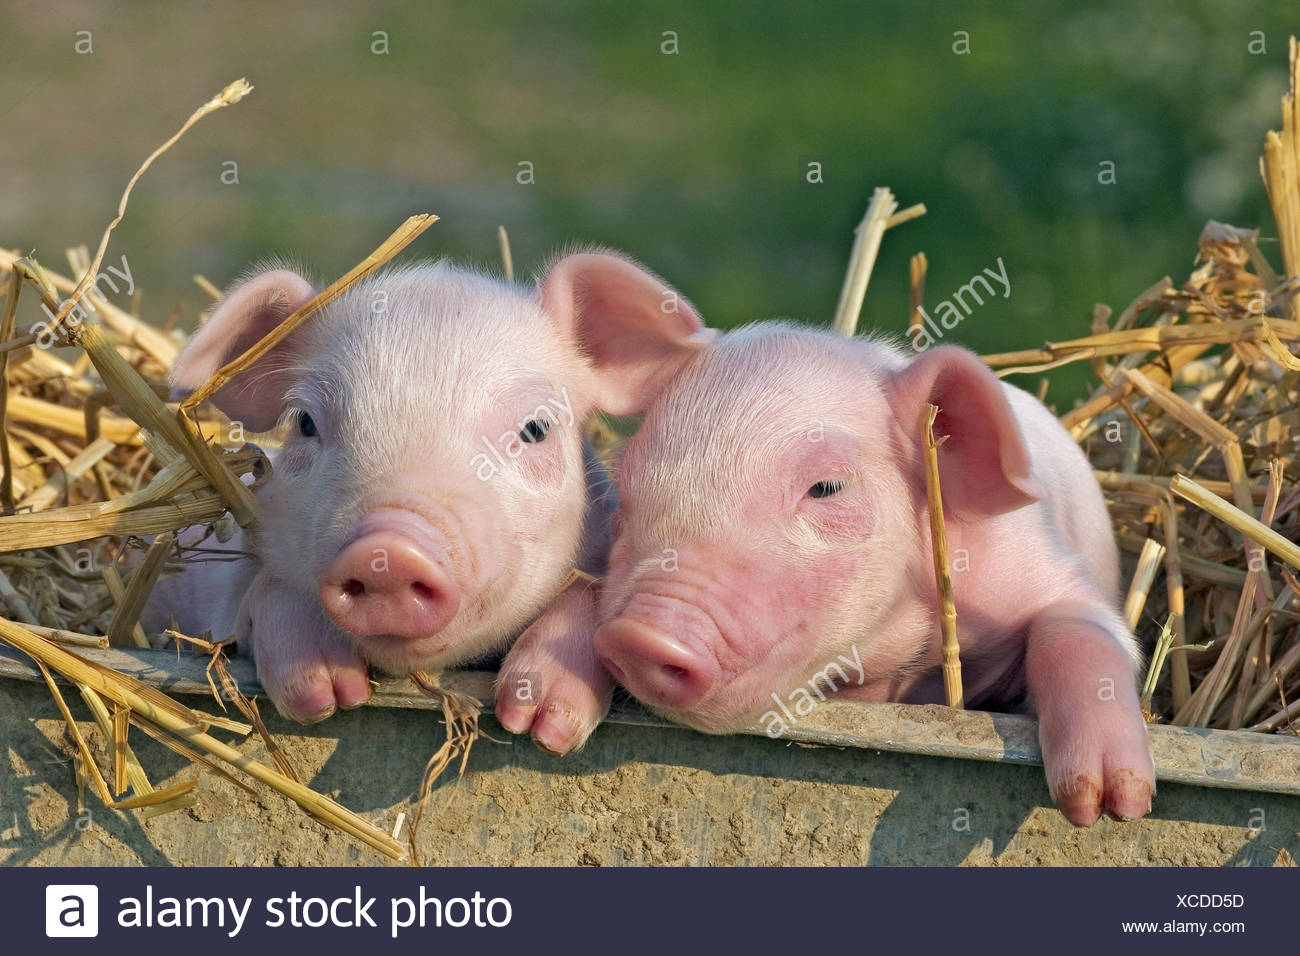 two young pig piglets in straw - Stock Image